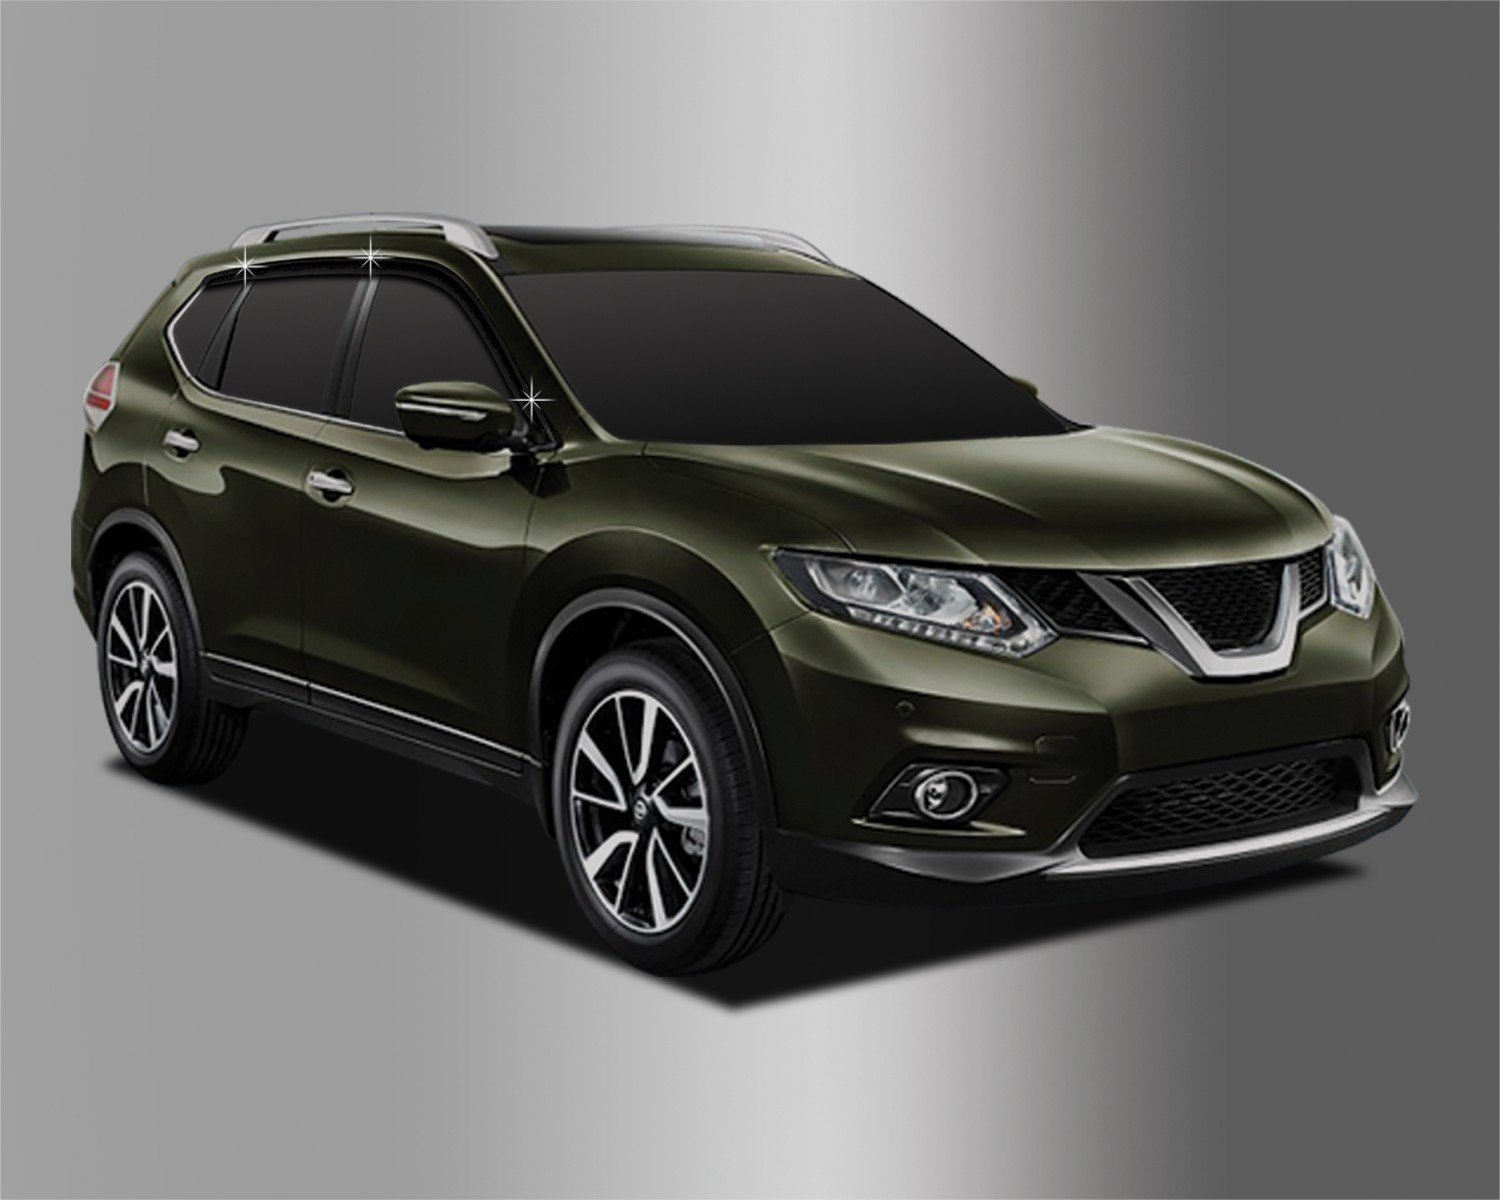 Smoked Autoclover Nissan X-Trail 2014 6 pieces Wind Deflectors Set